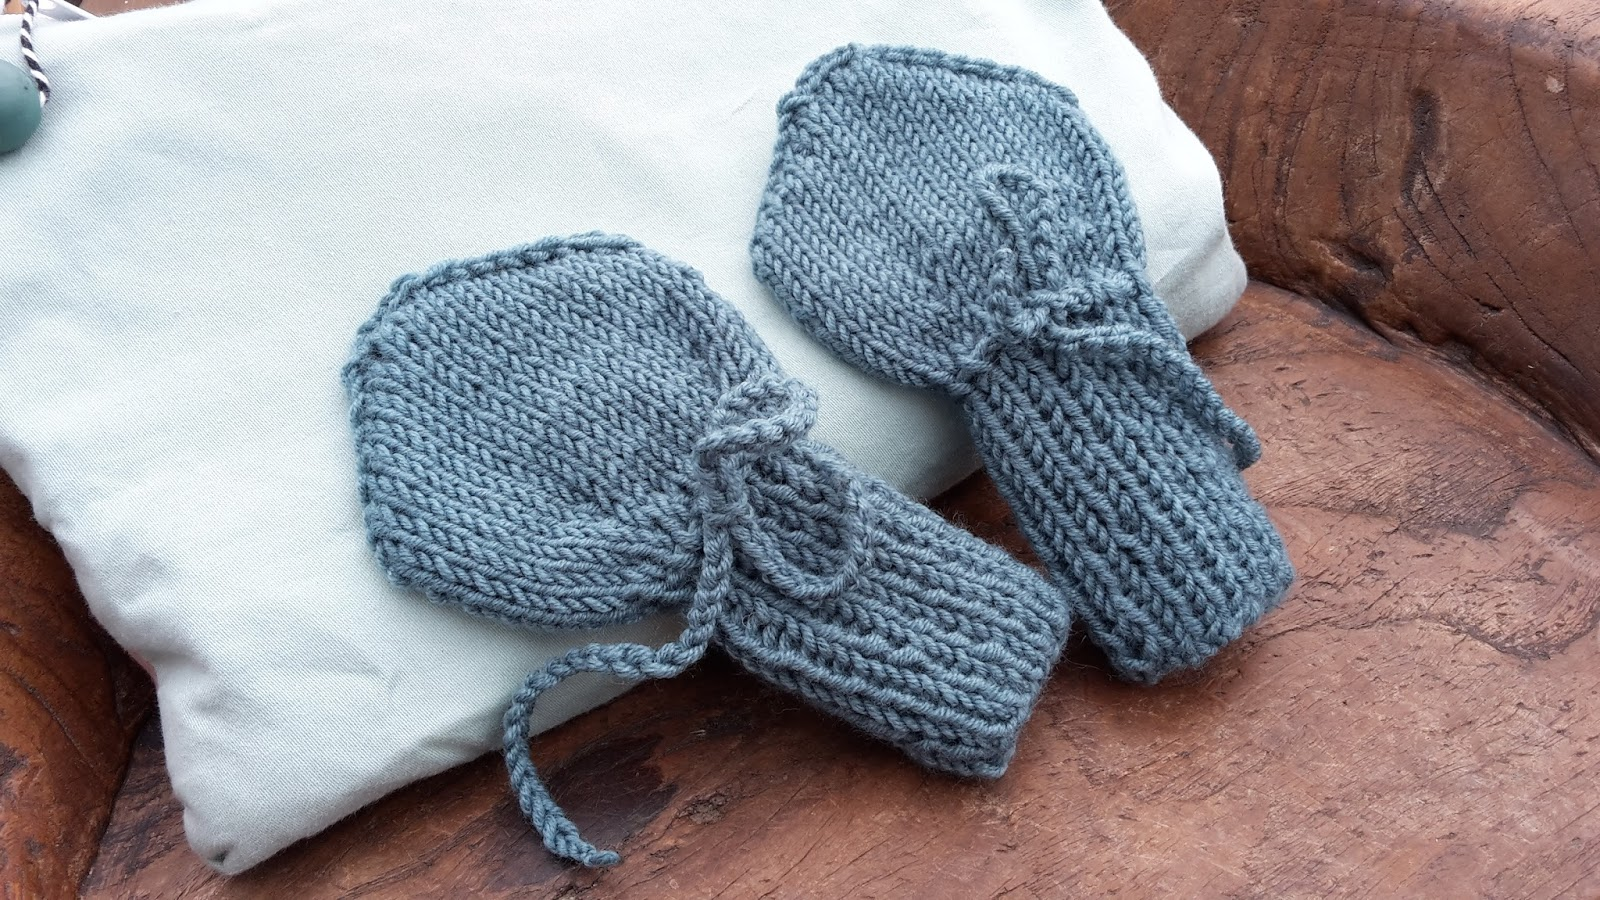 jurinde macht was anleitung babyhandschuhe stricken. Black Bedroom Furniture Sets. Home Design Ideas